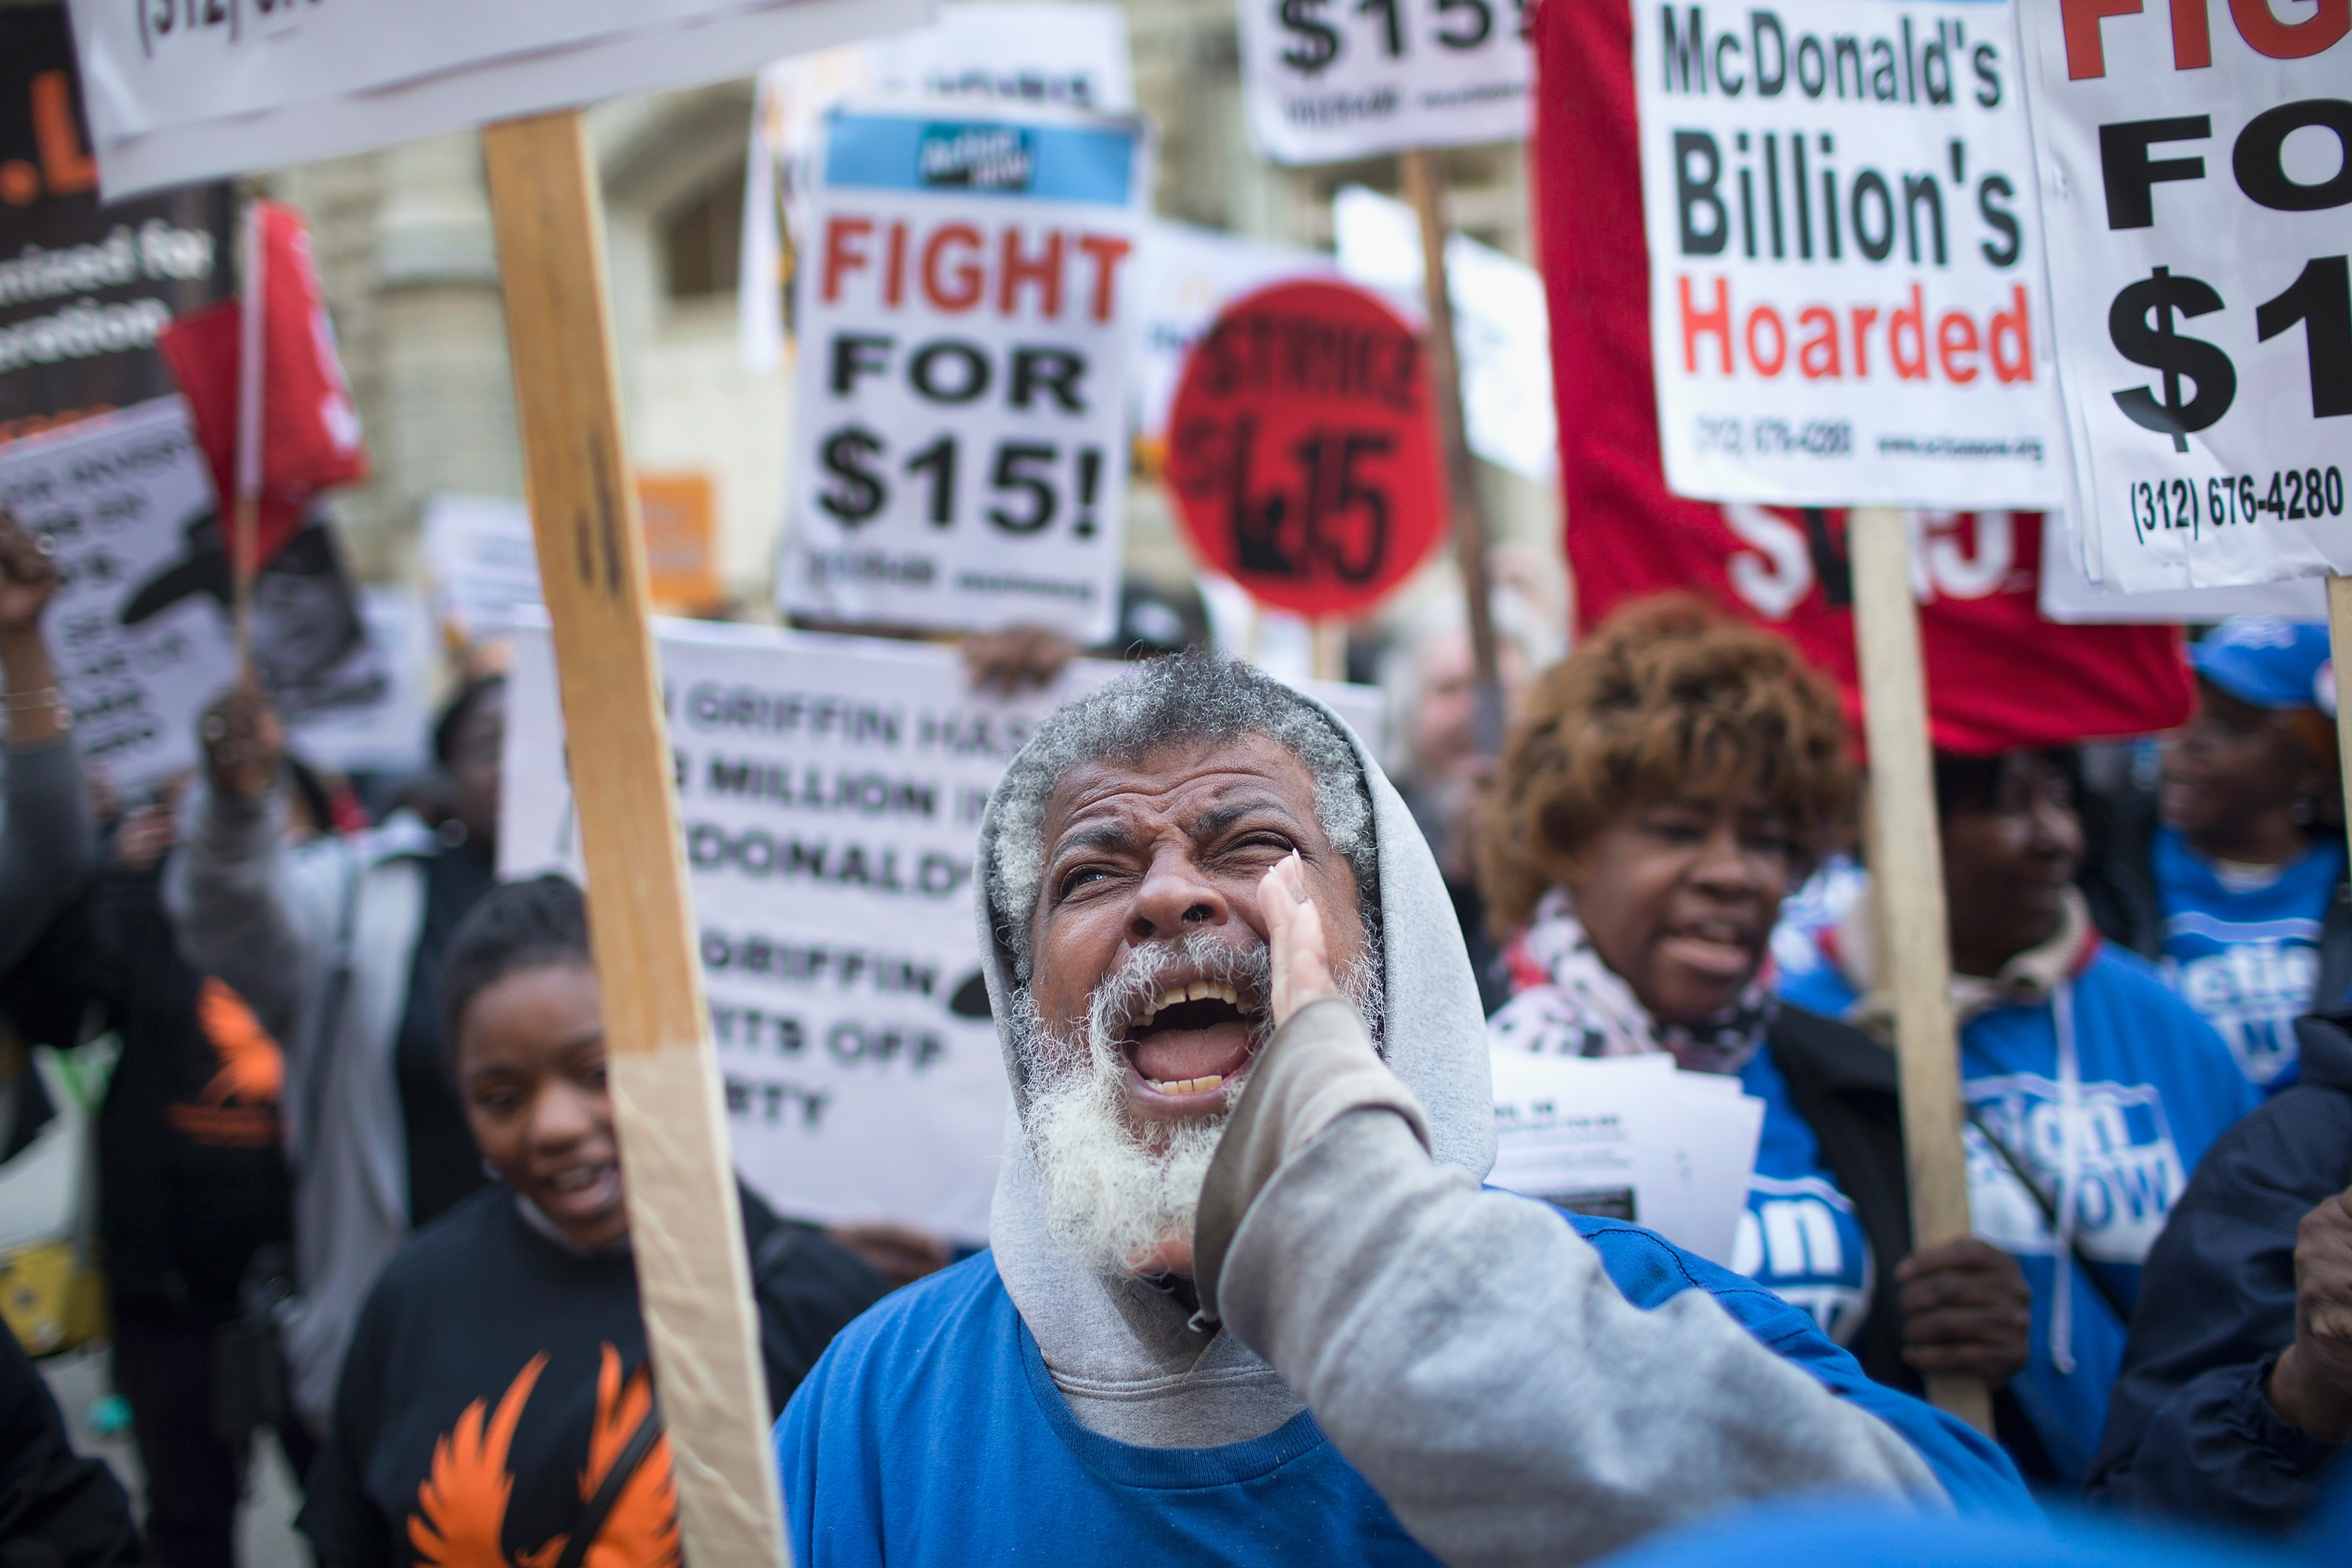 Demonstrators demanding an increase in the minimum wage to $15 an hour prepare to march on April 14, 2016 in Chicago.